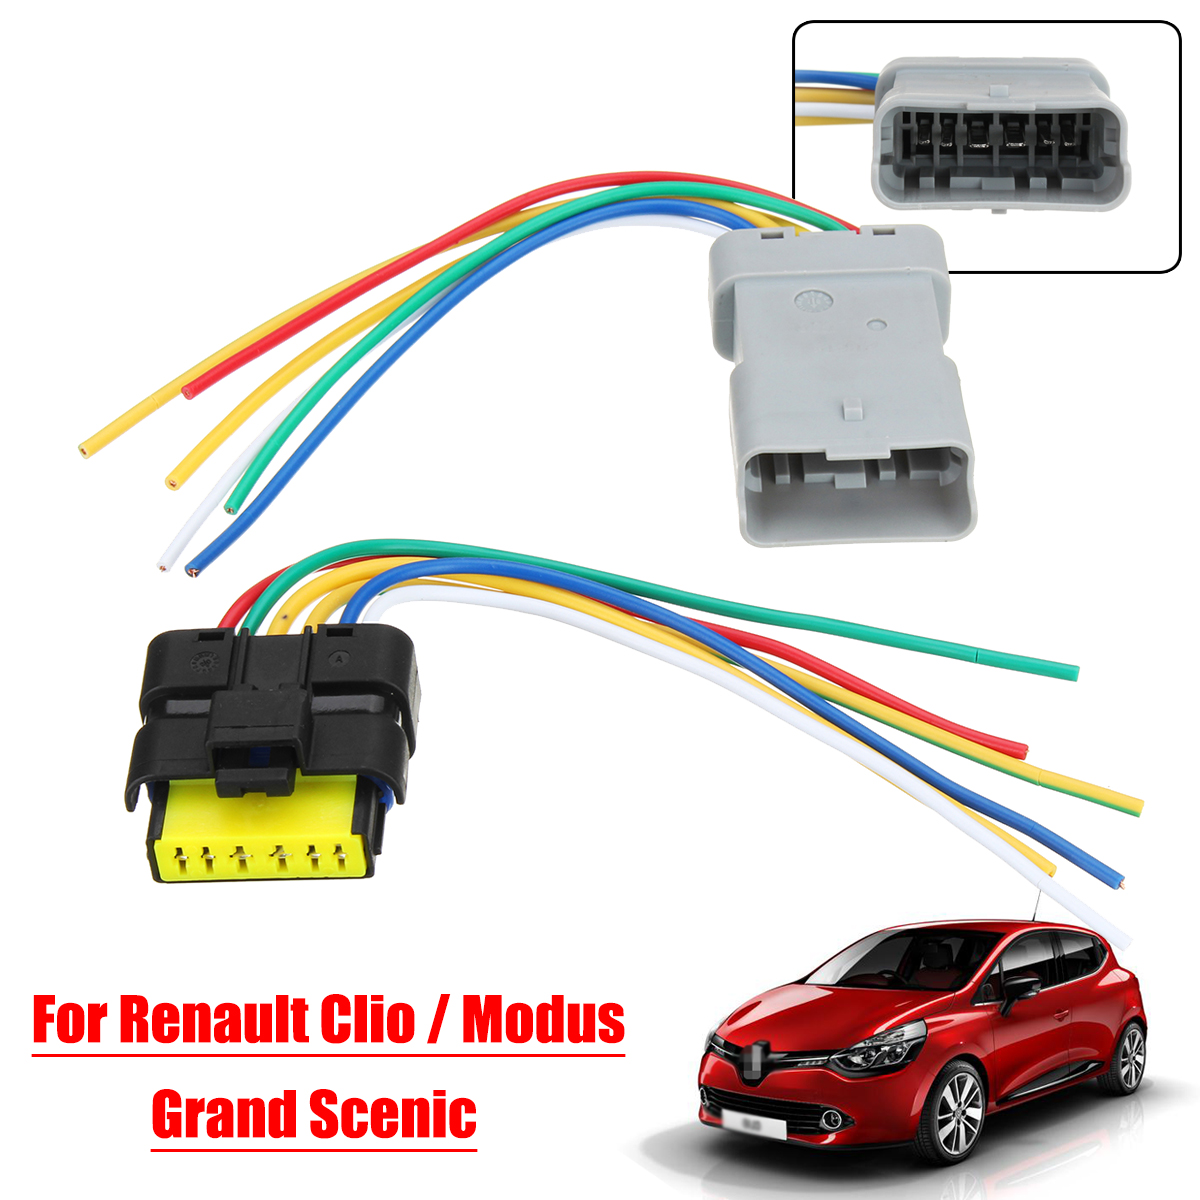 small resolution of 1set window module wiring ponytail harness plastic plug for renault clio grand scenic modus